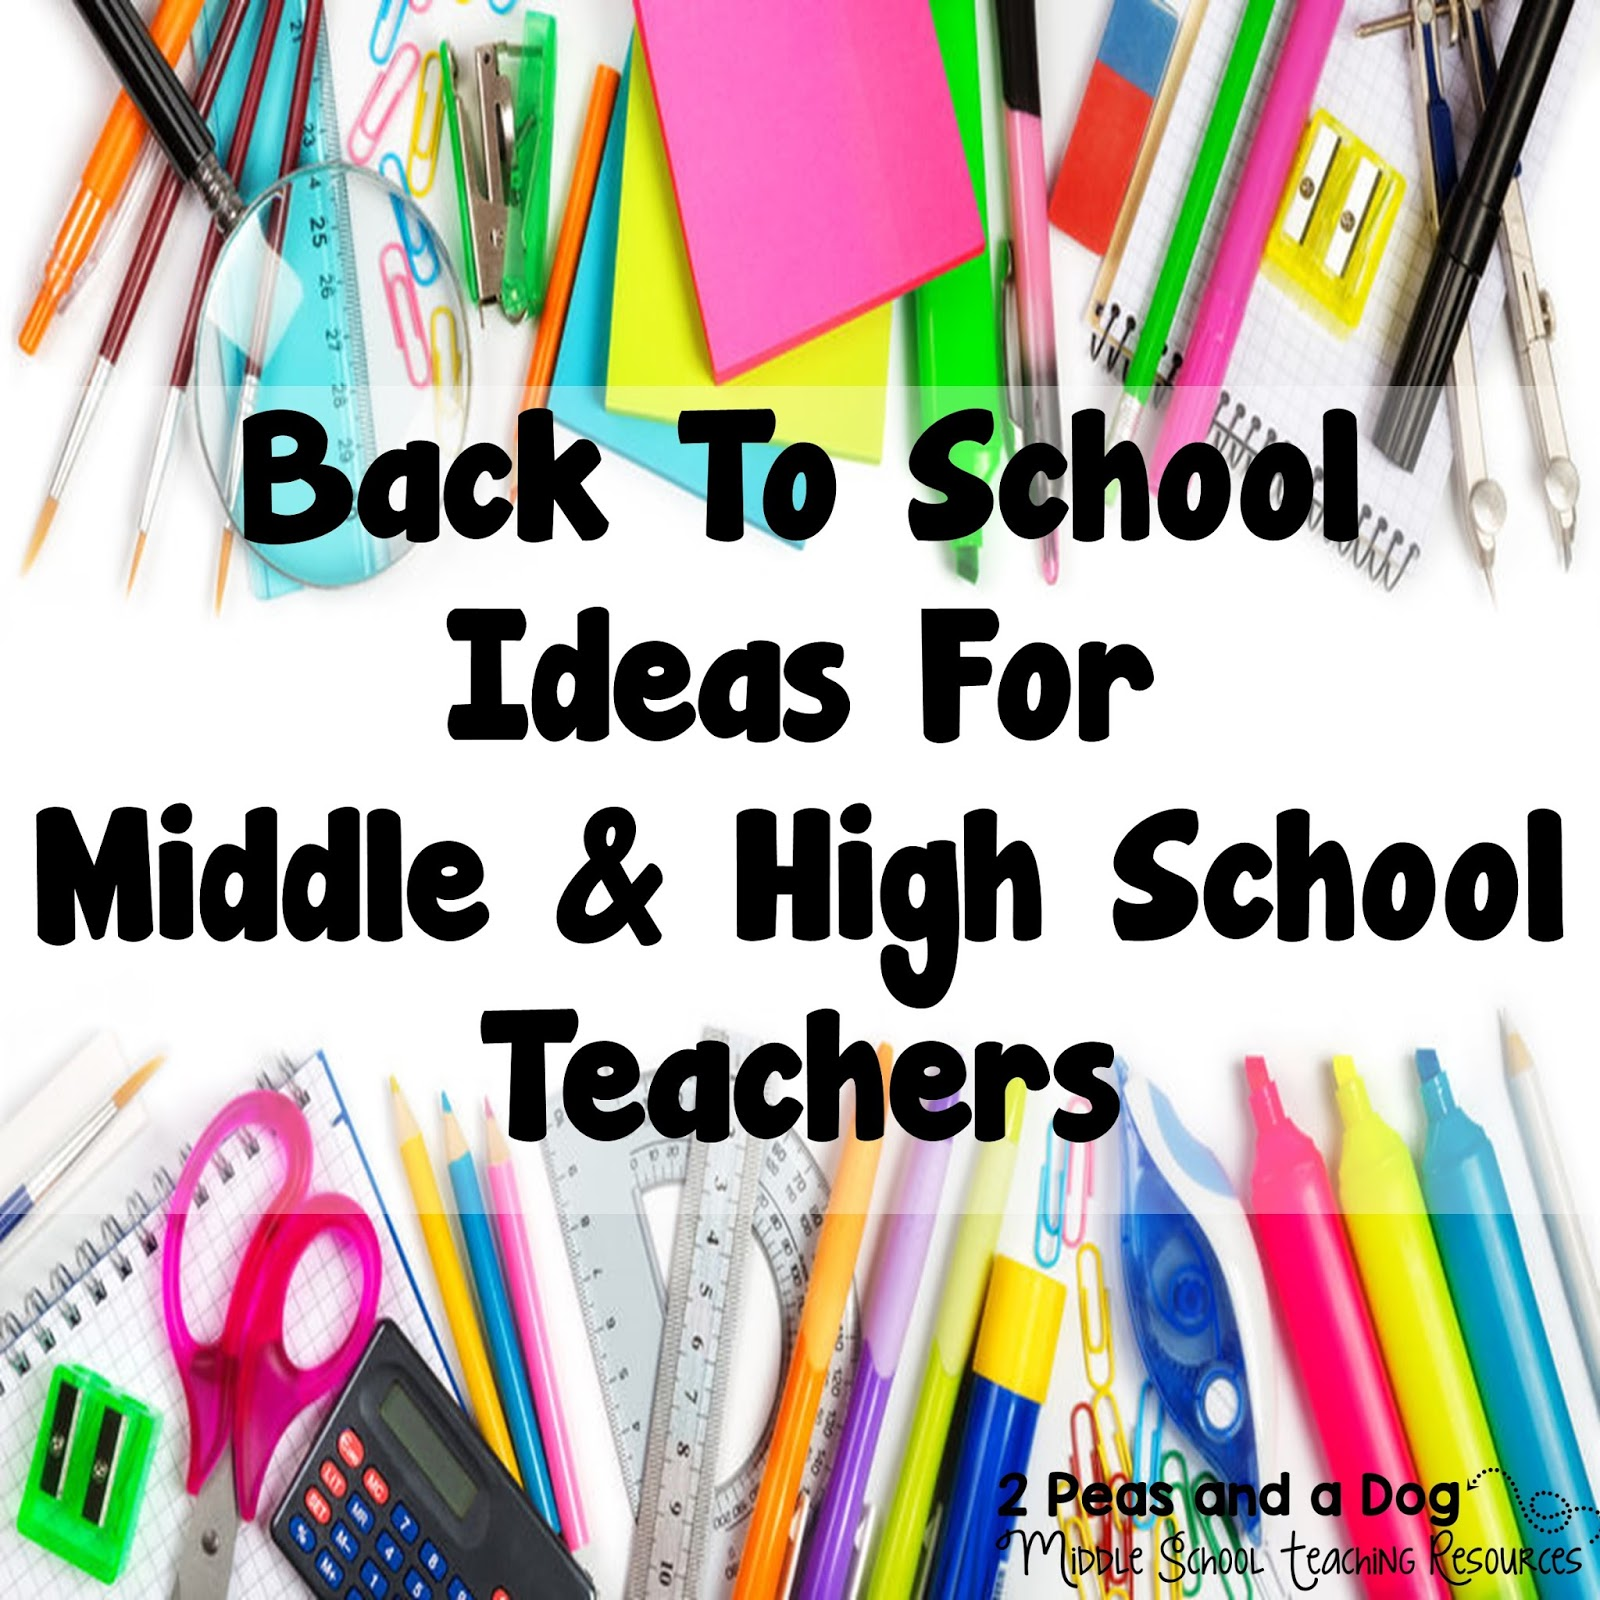 Back To School Ideas For Middle And High School Teachers